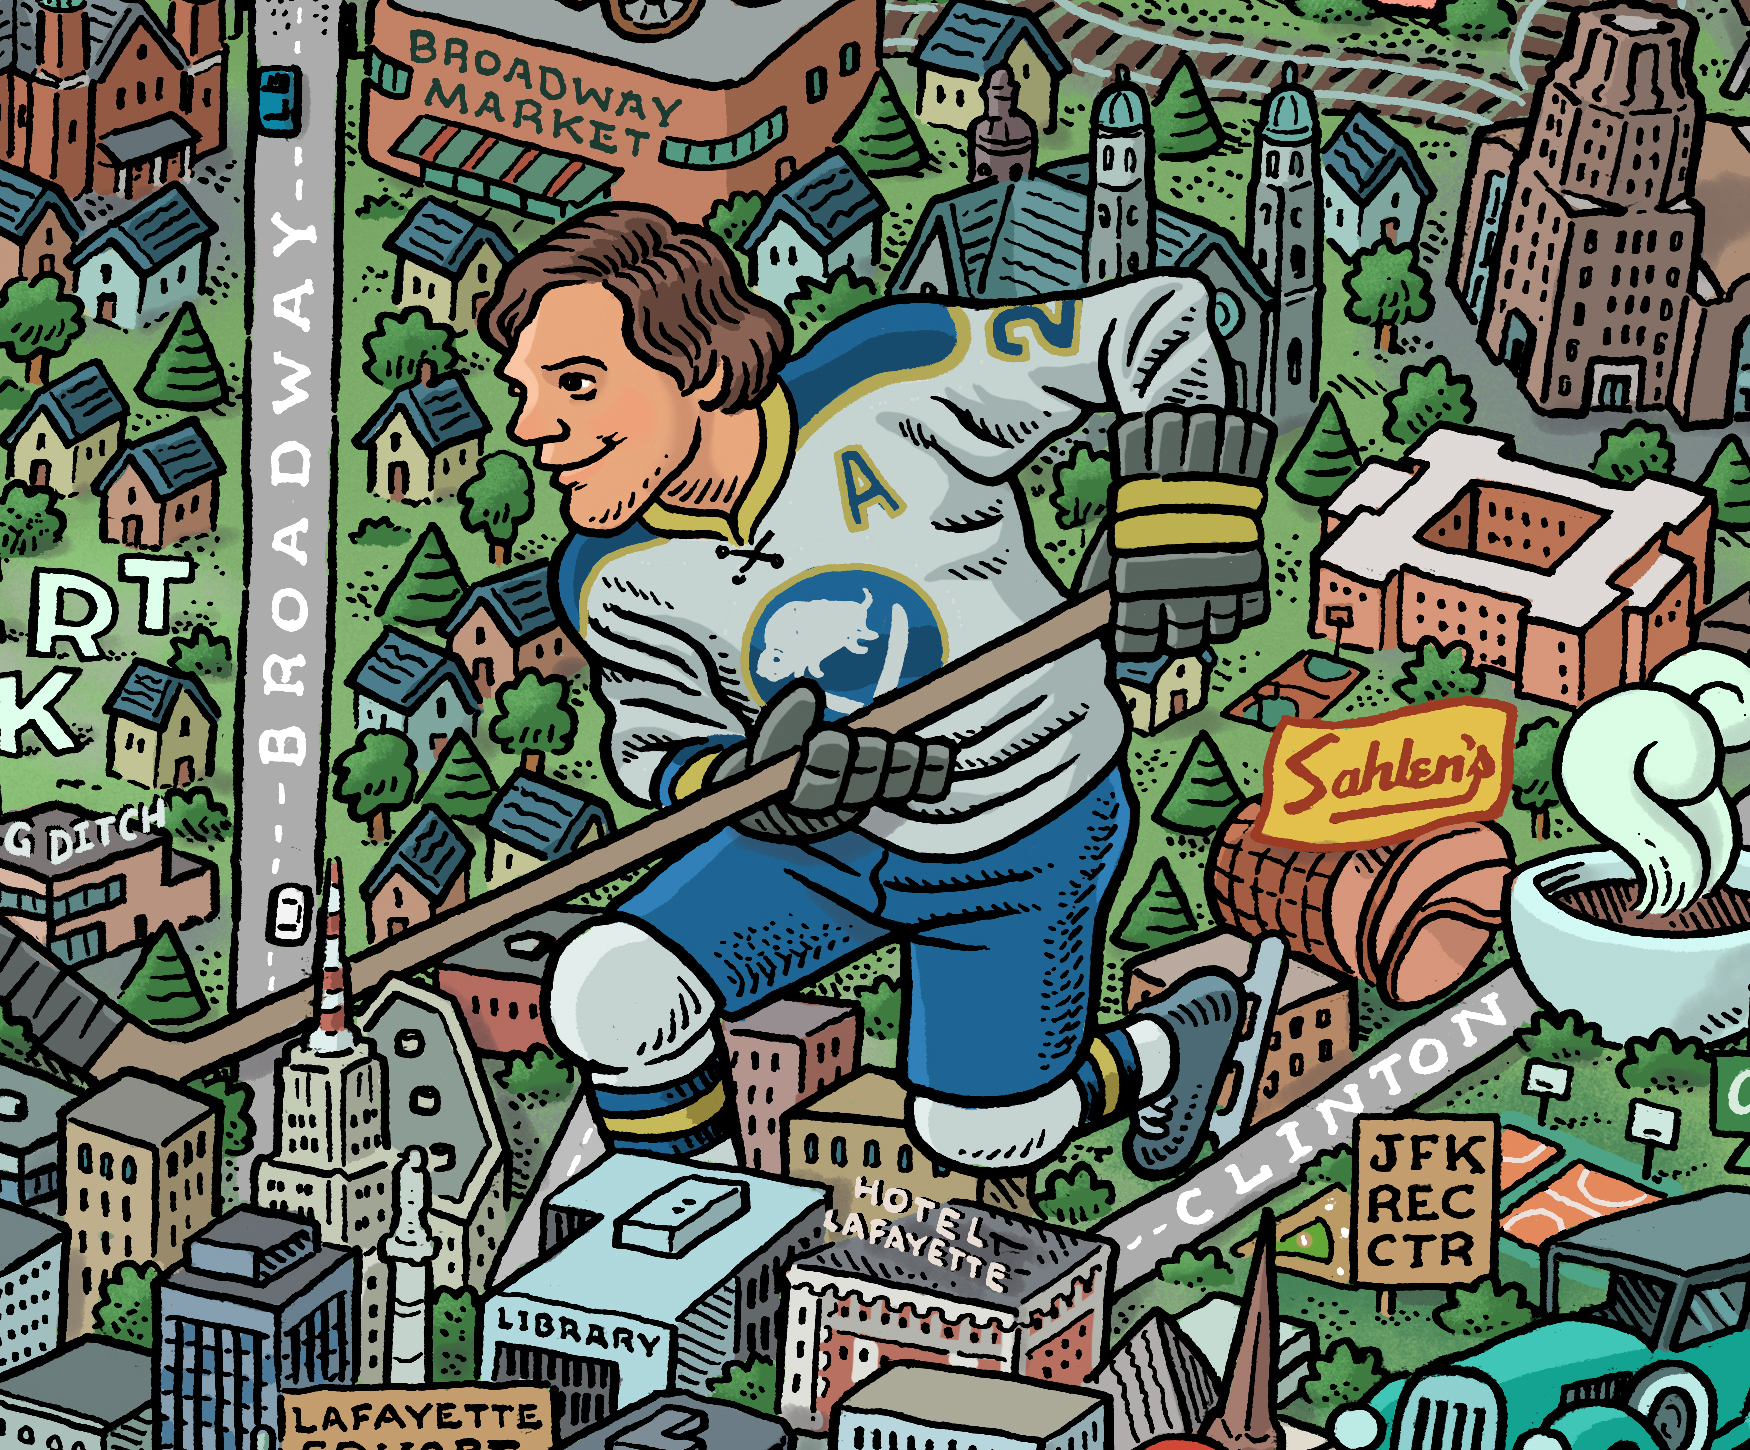 Rust Belt pride shines in new illustrated map of Buffalo The